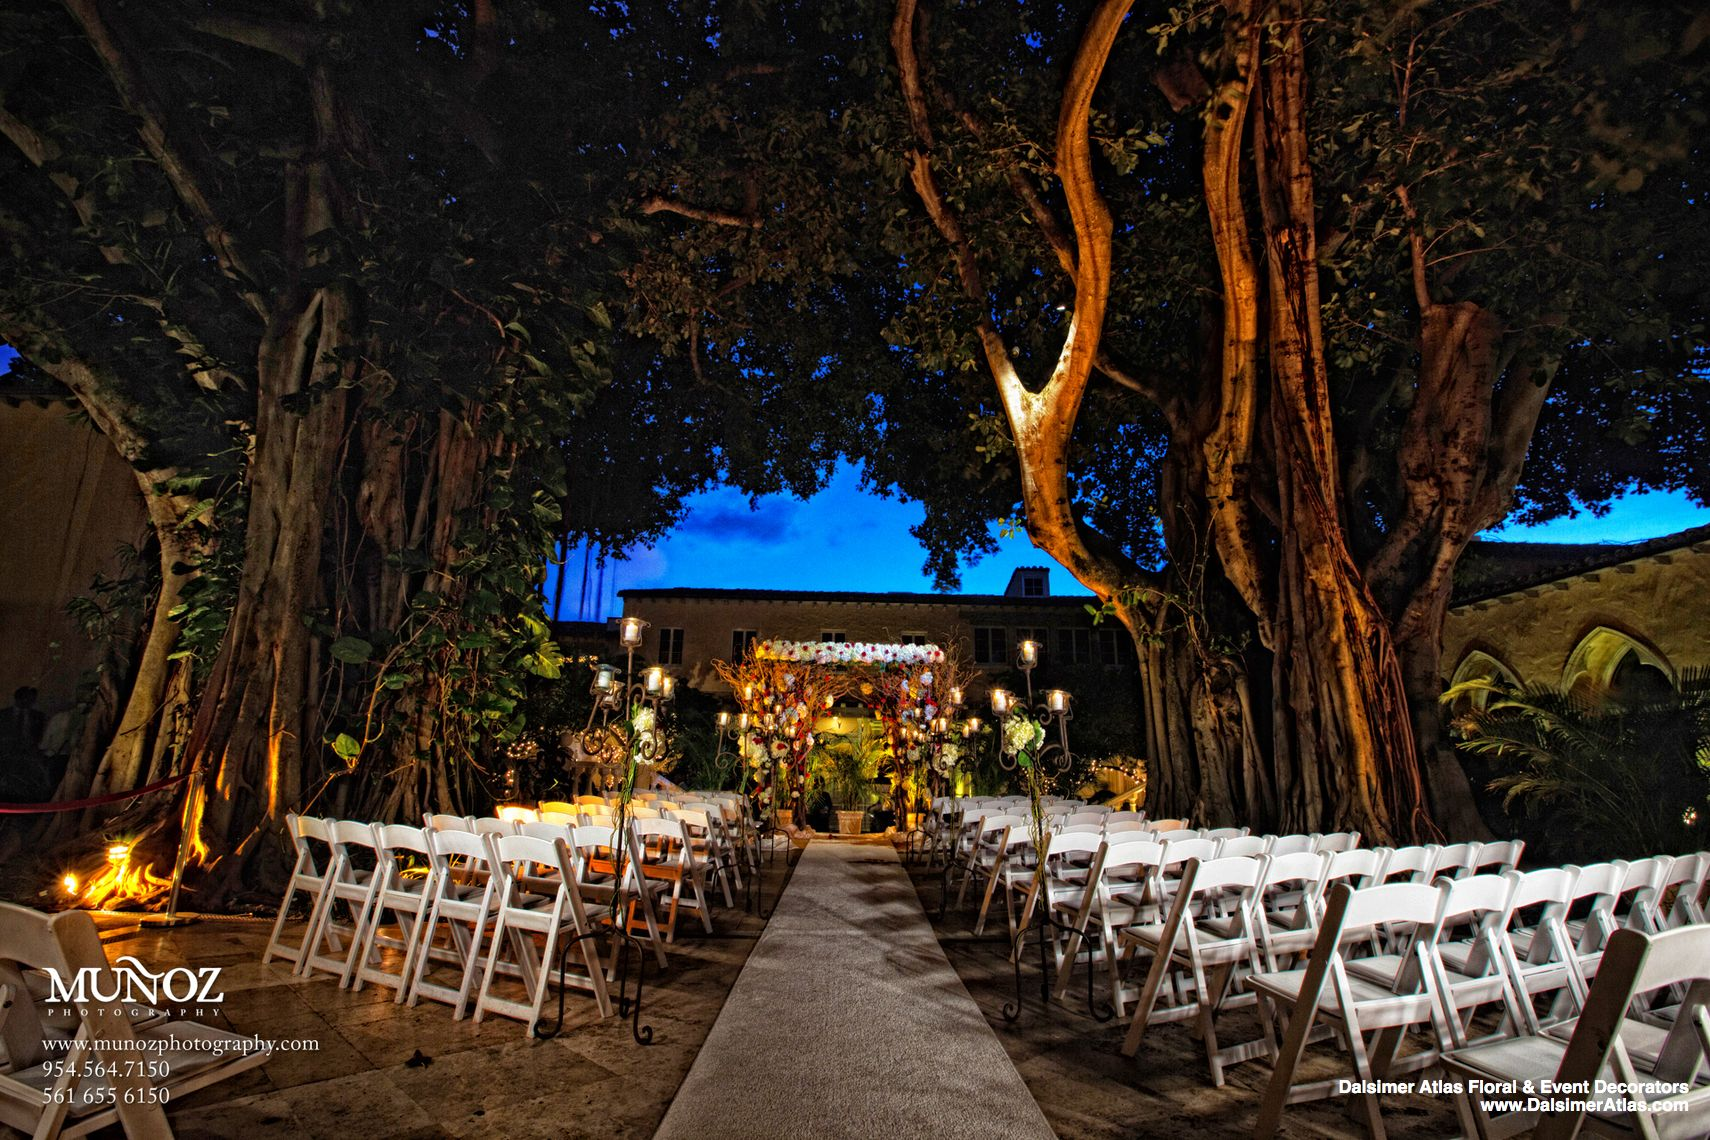 wedding-florist-flowers-decorations-the-addison-boca-raton-florida-dalsimer-atlas-10